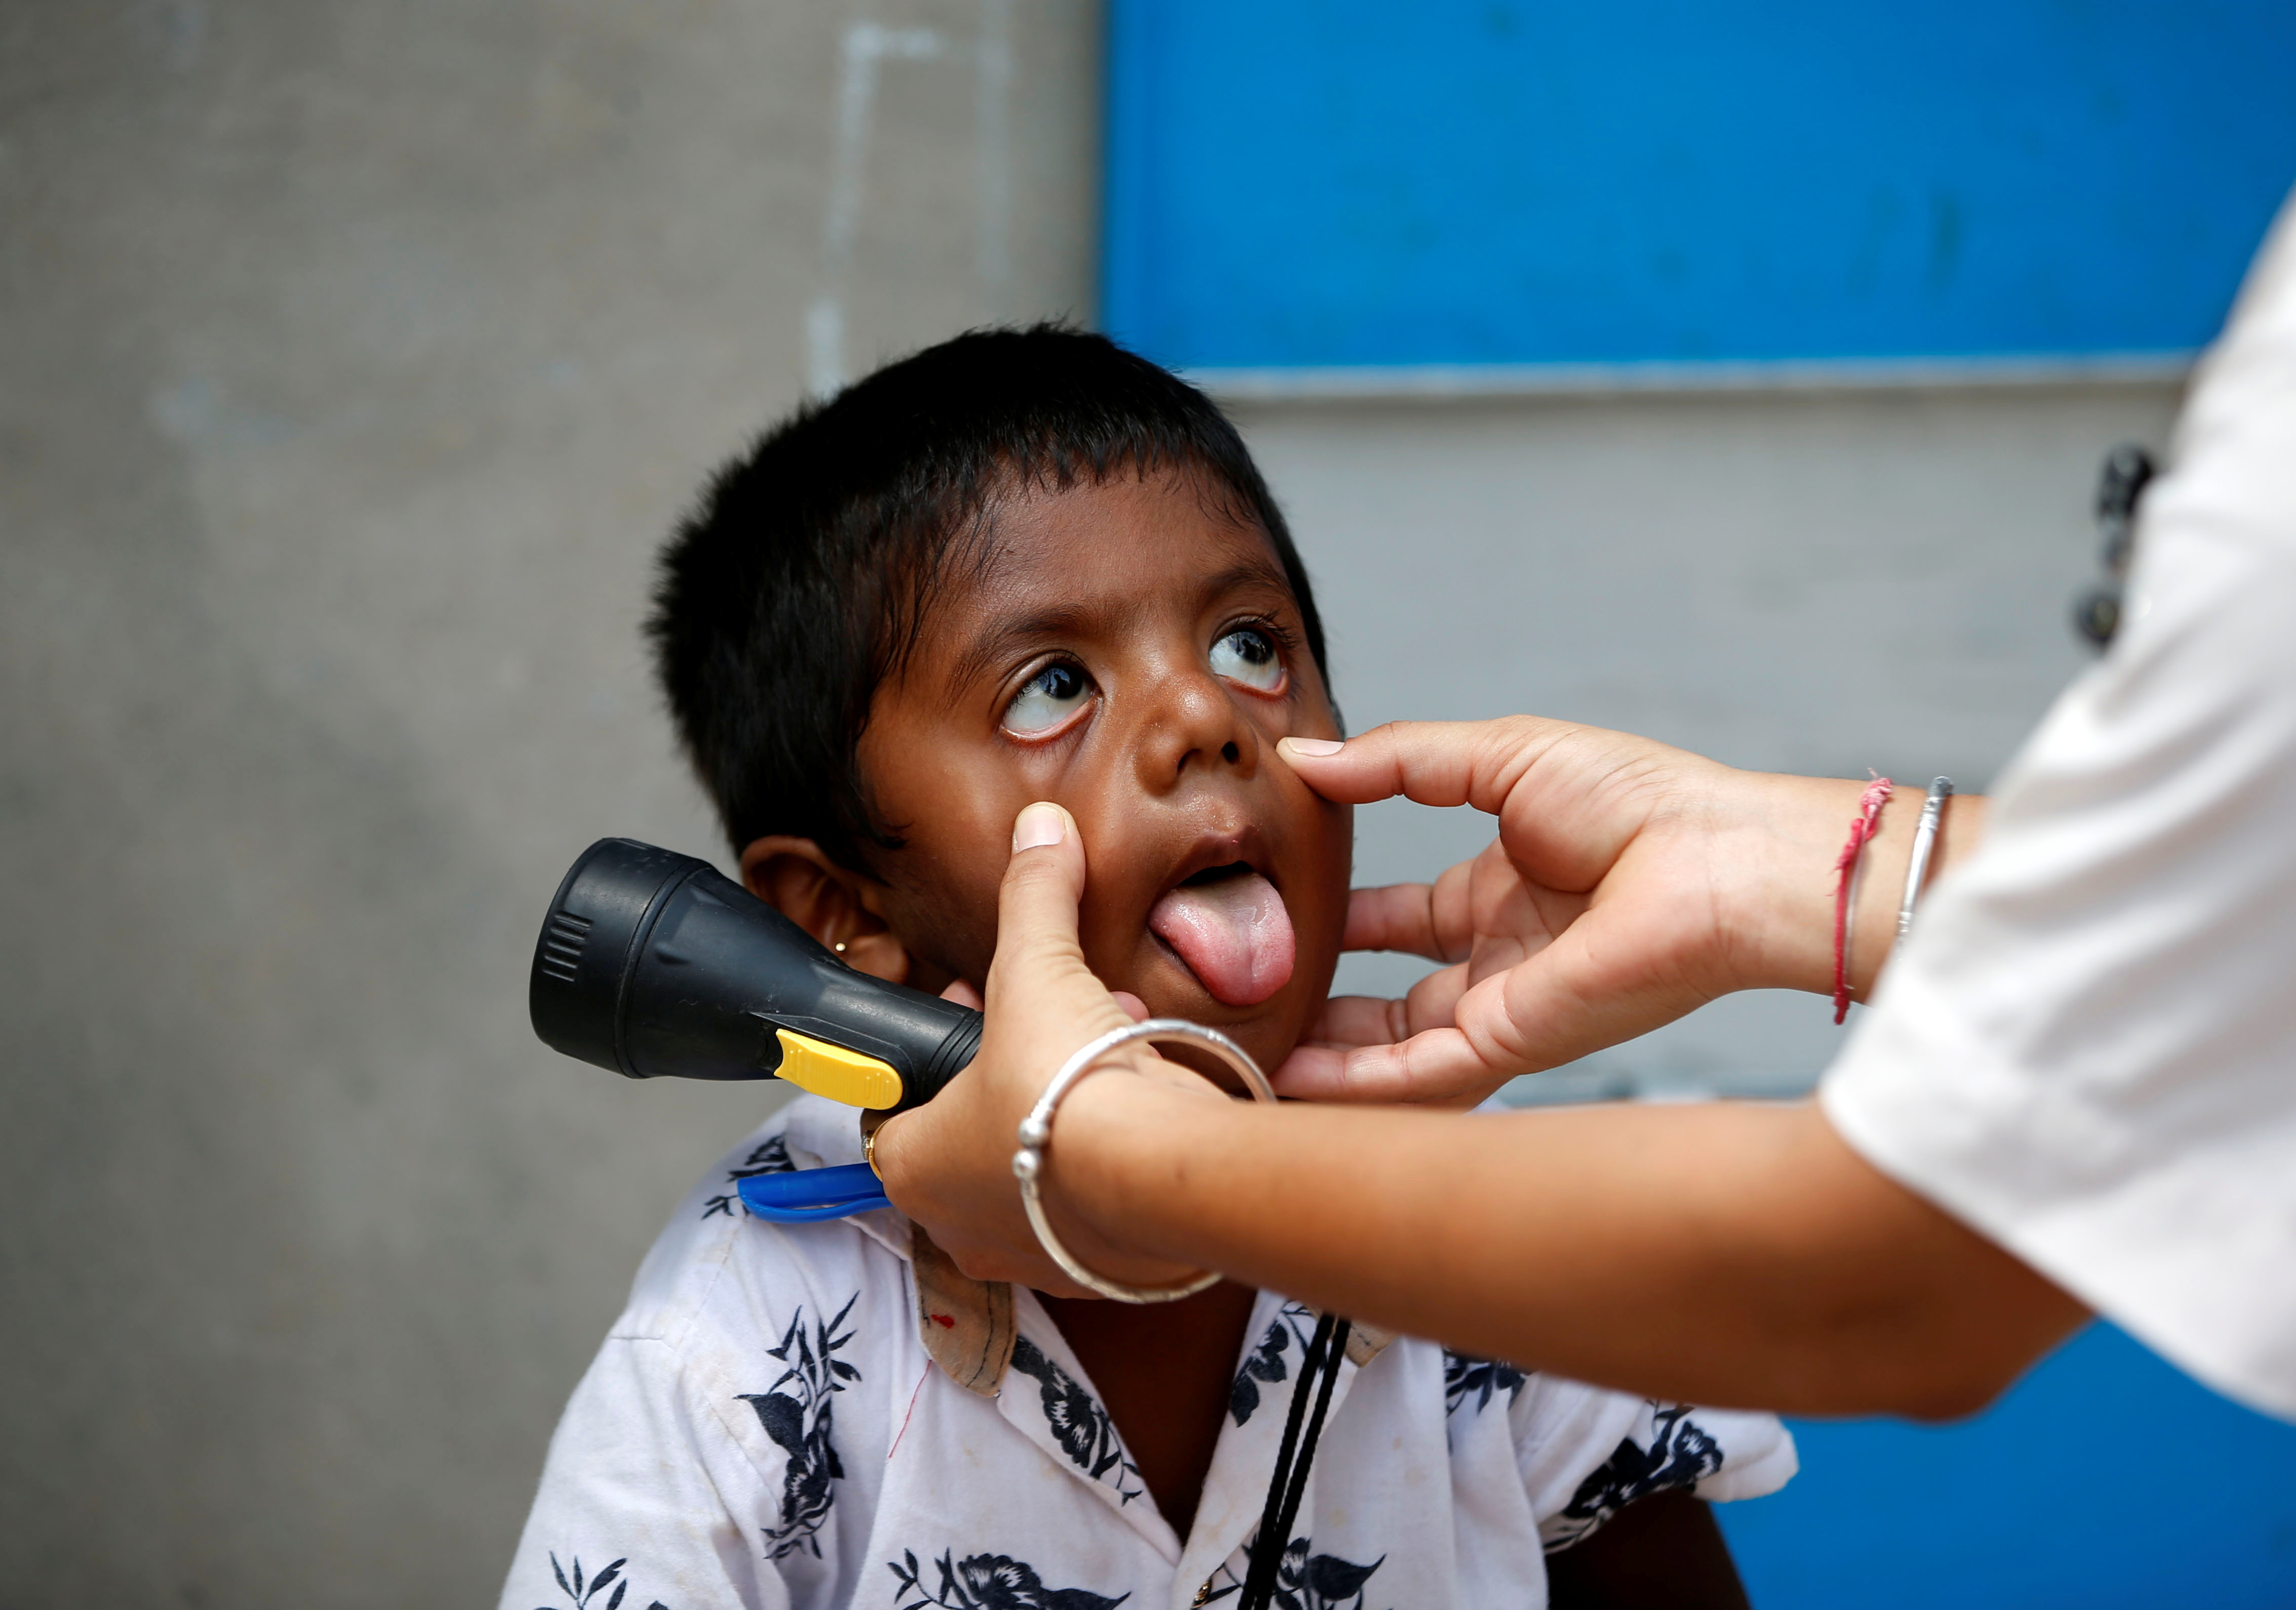 A healthcare worker examines a child during a door-to-door surveillance to safeguard children amidst the spread of the coronavirus disease (COVID-19), at a village on the outskirts of Ahmedabad, India, June 9, 2021. REUTERS/Amit Dave